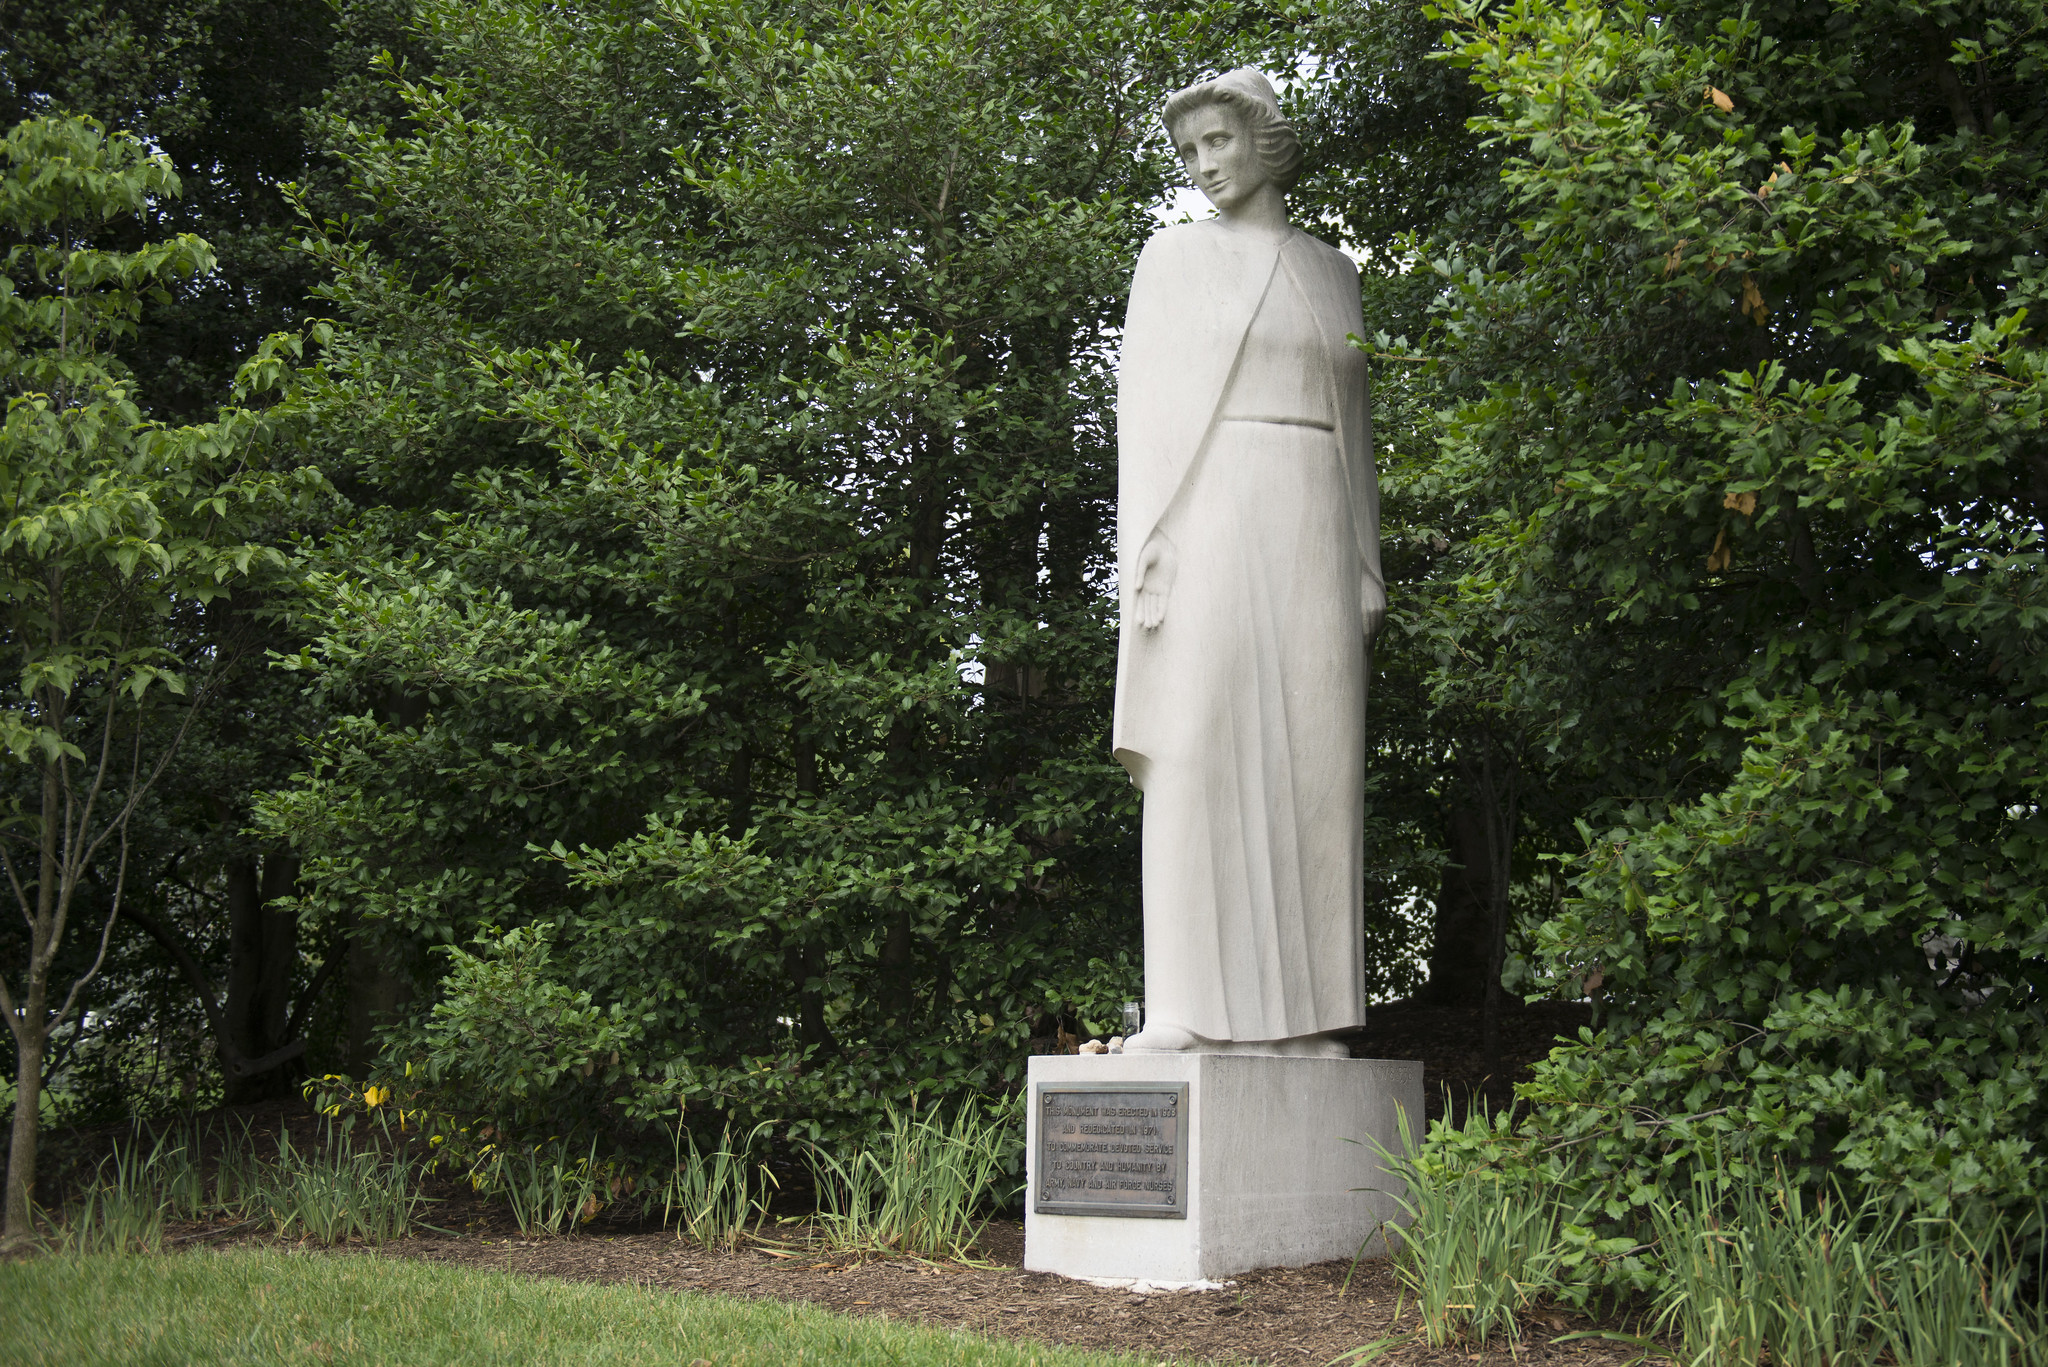 The Nurses Memorial, created by sculptor Frances Rich